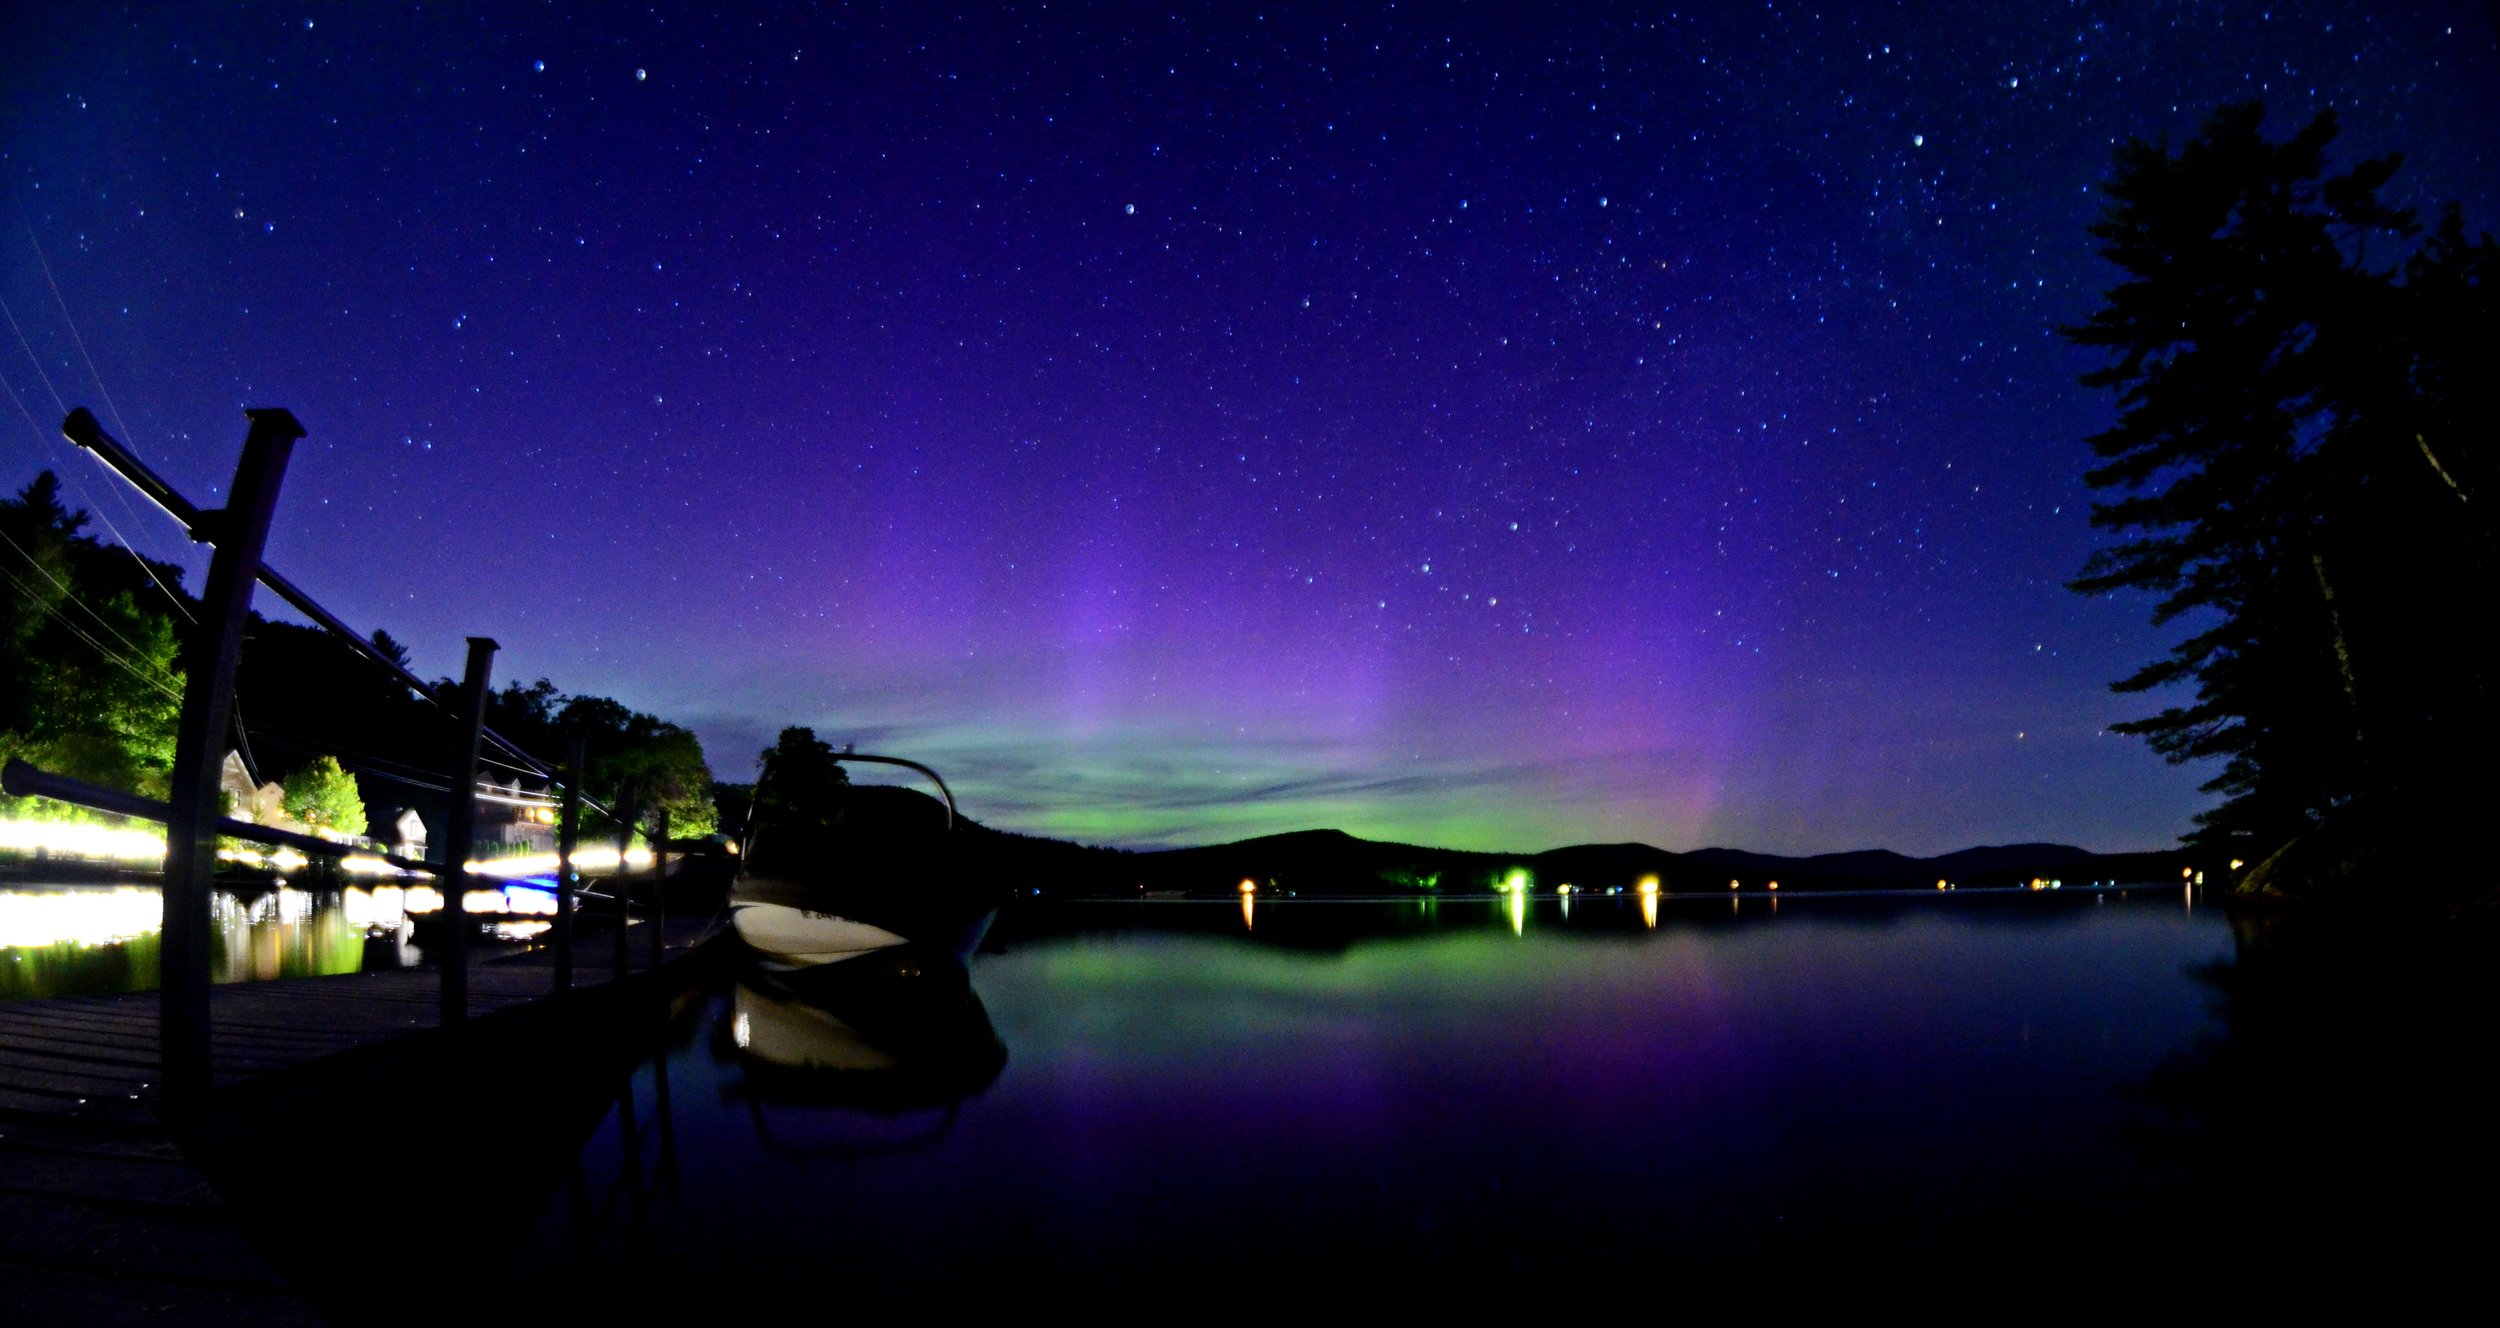 The Aurora Borealis as seen from our dock at Water Monkey!